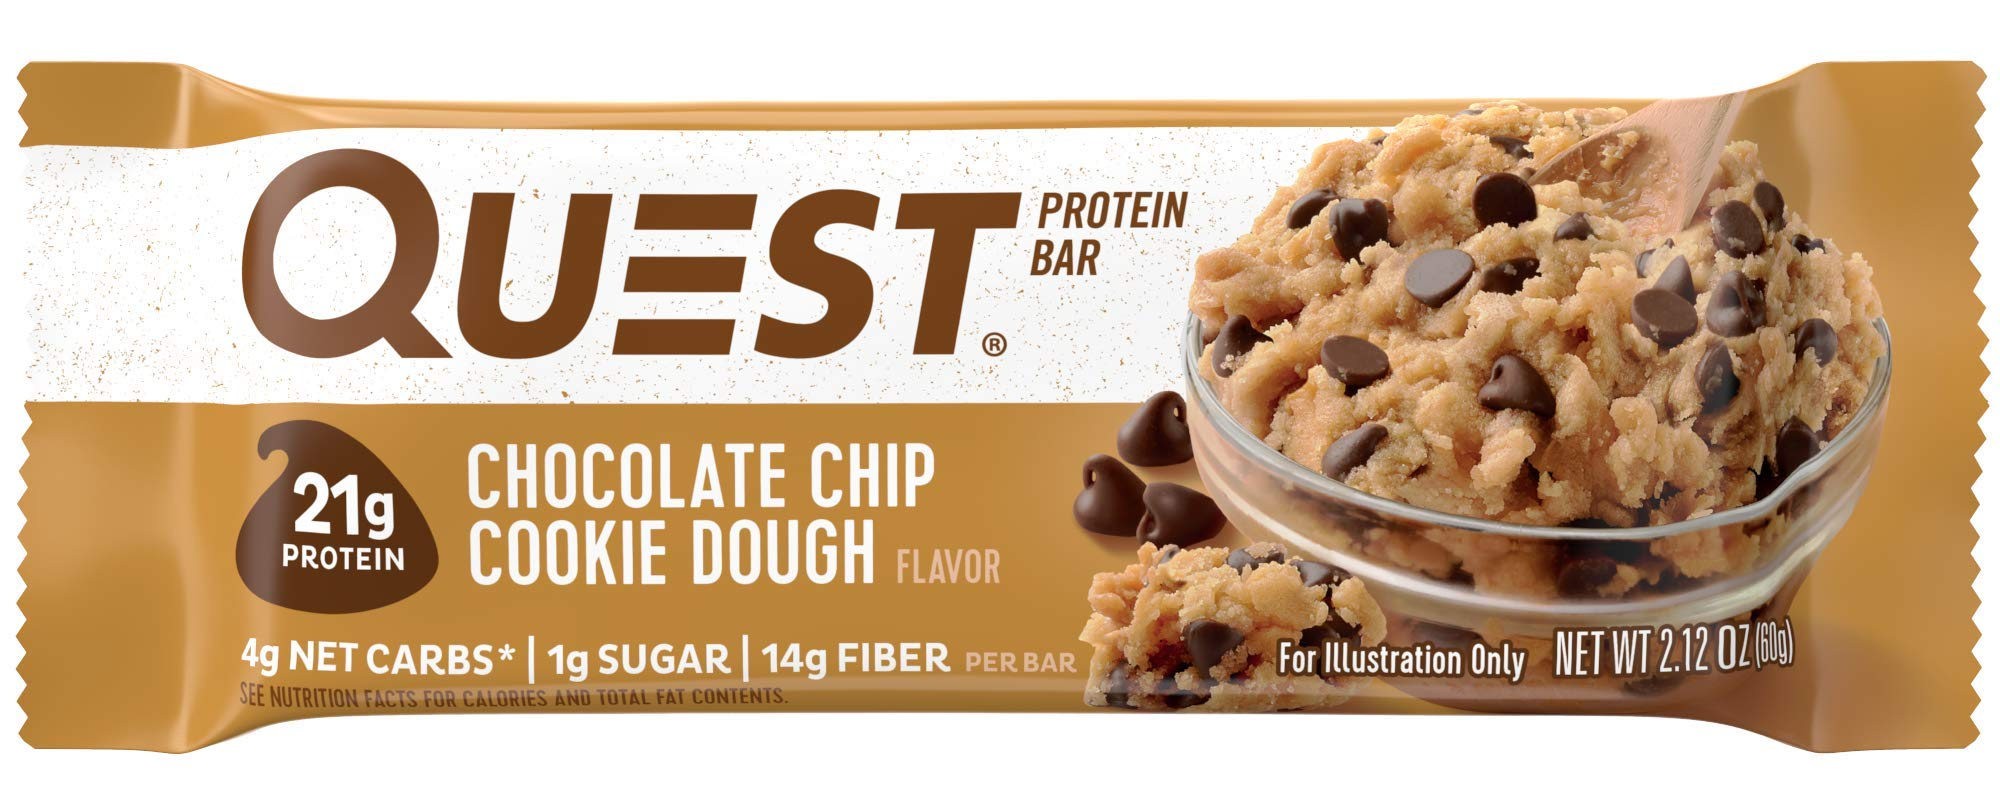 Quest Nutrition Chocolate Chip Cookie Dough Protein Bar High Low Carb Gluten